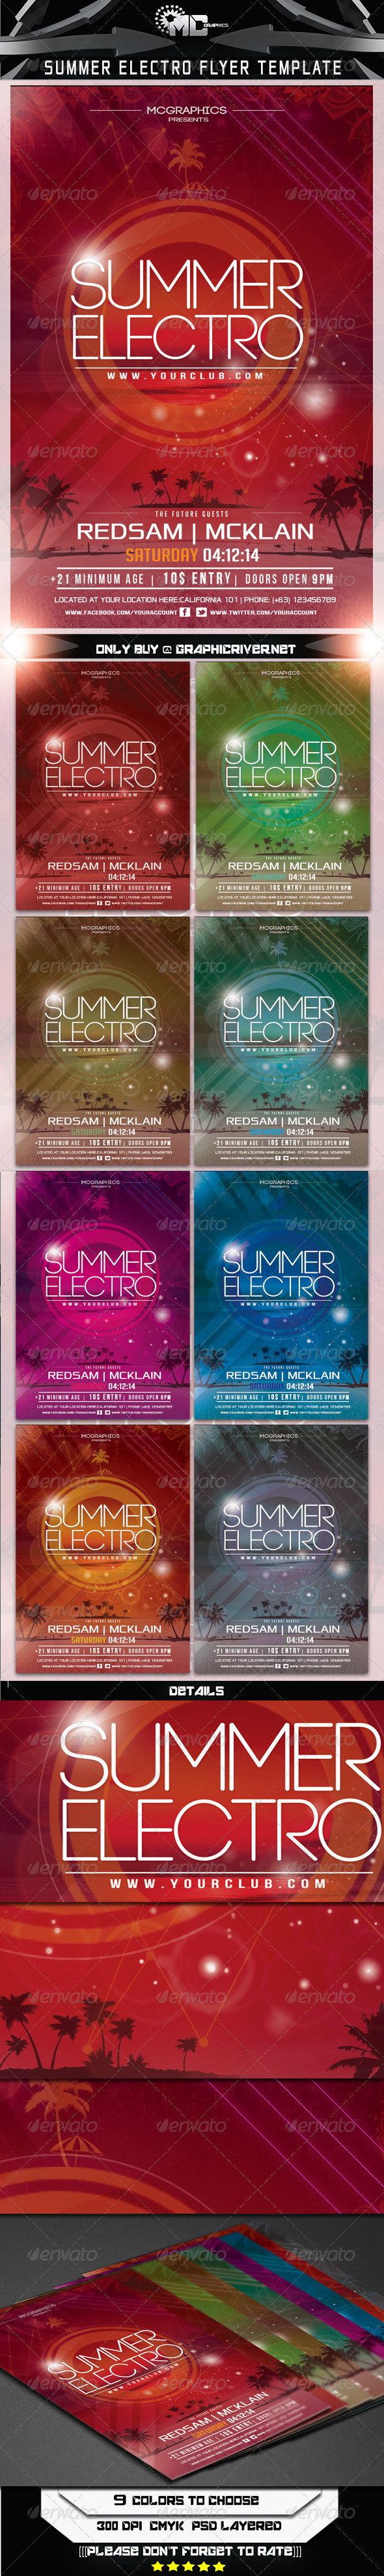 GraphicRiver Summer Electro Flyer Template 6984723